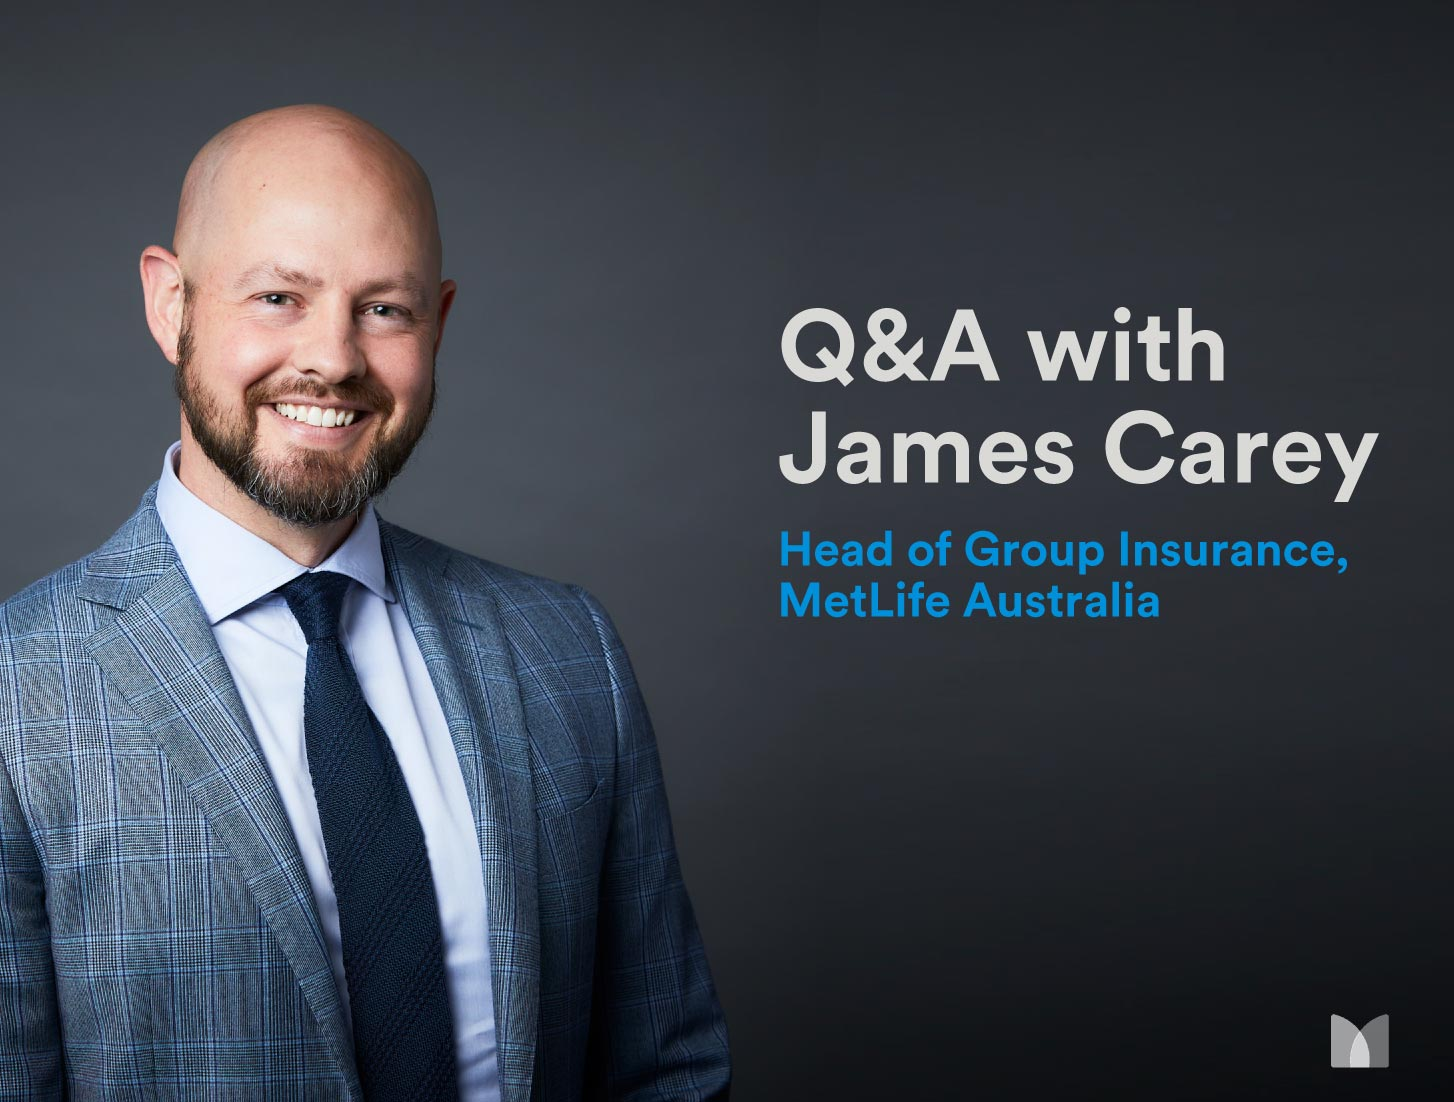 Q&A with James Carey, Head of Group Insurance at MetLife